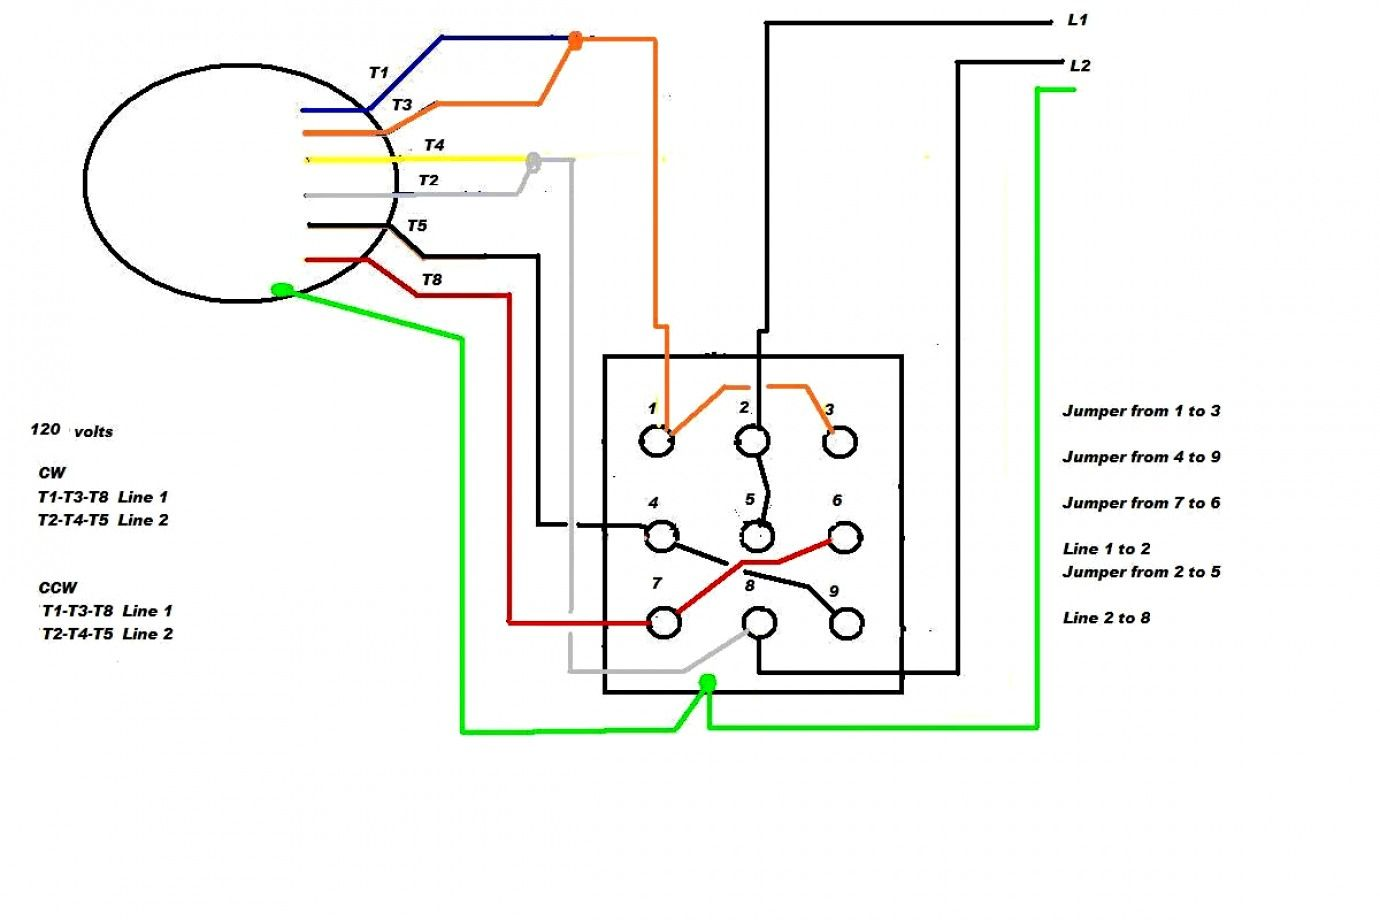 hight resolution of single phase wiring diagram for house wiring diagram diagram marathon electric 3 phase wiring diagram